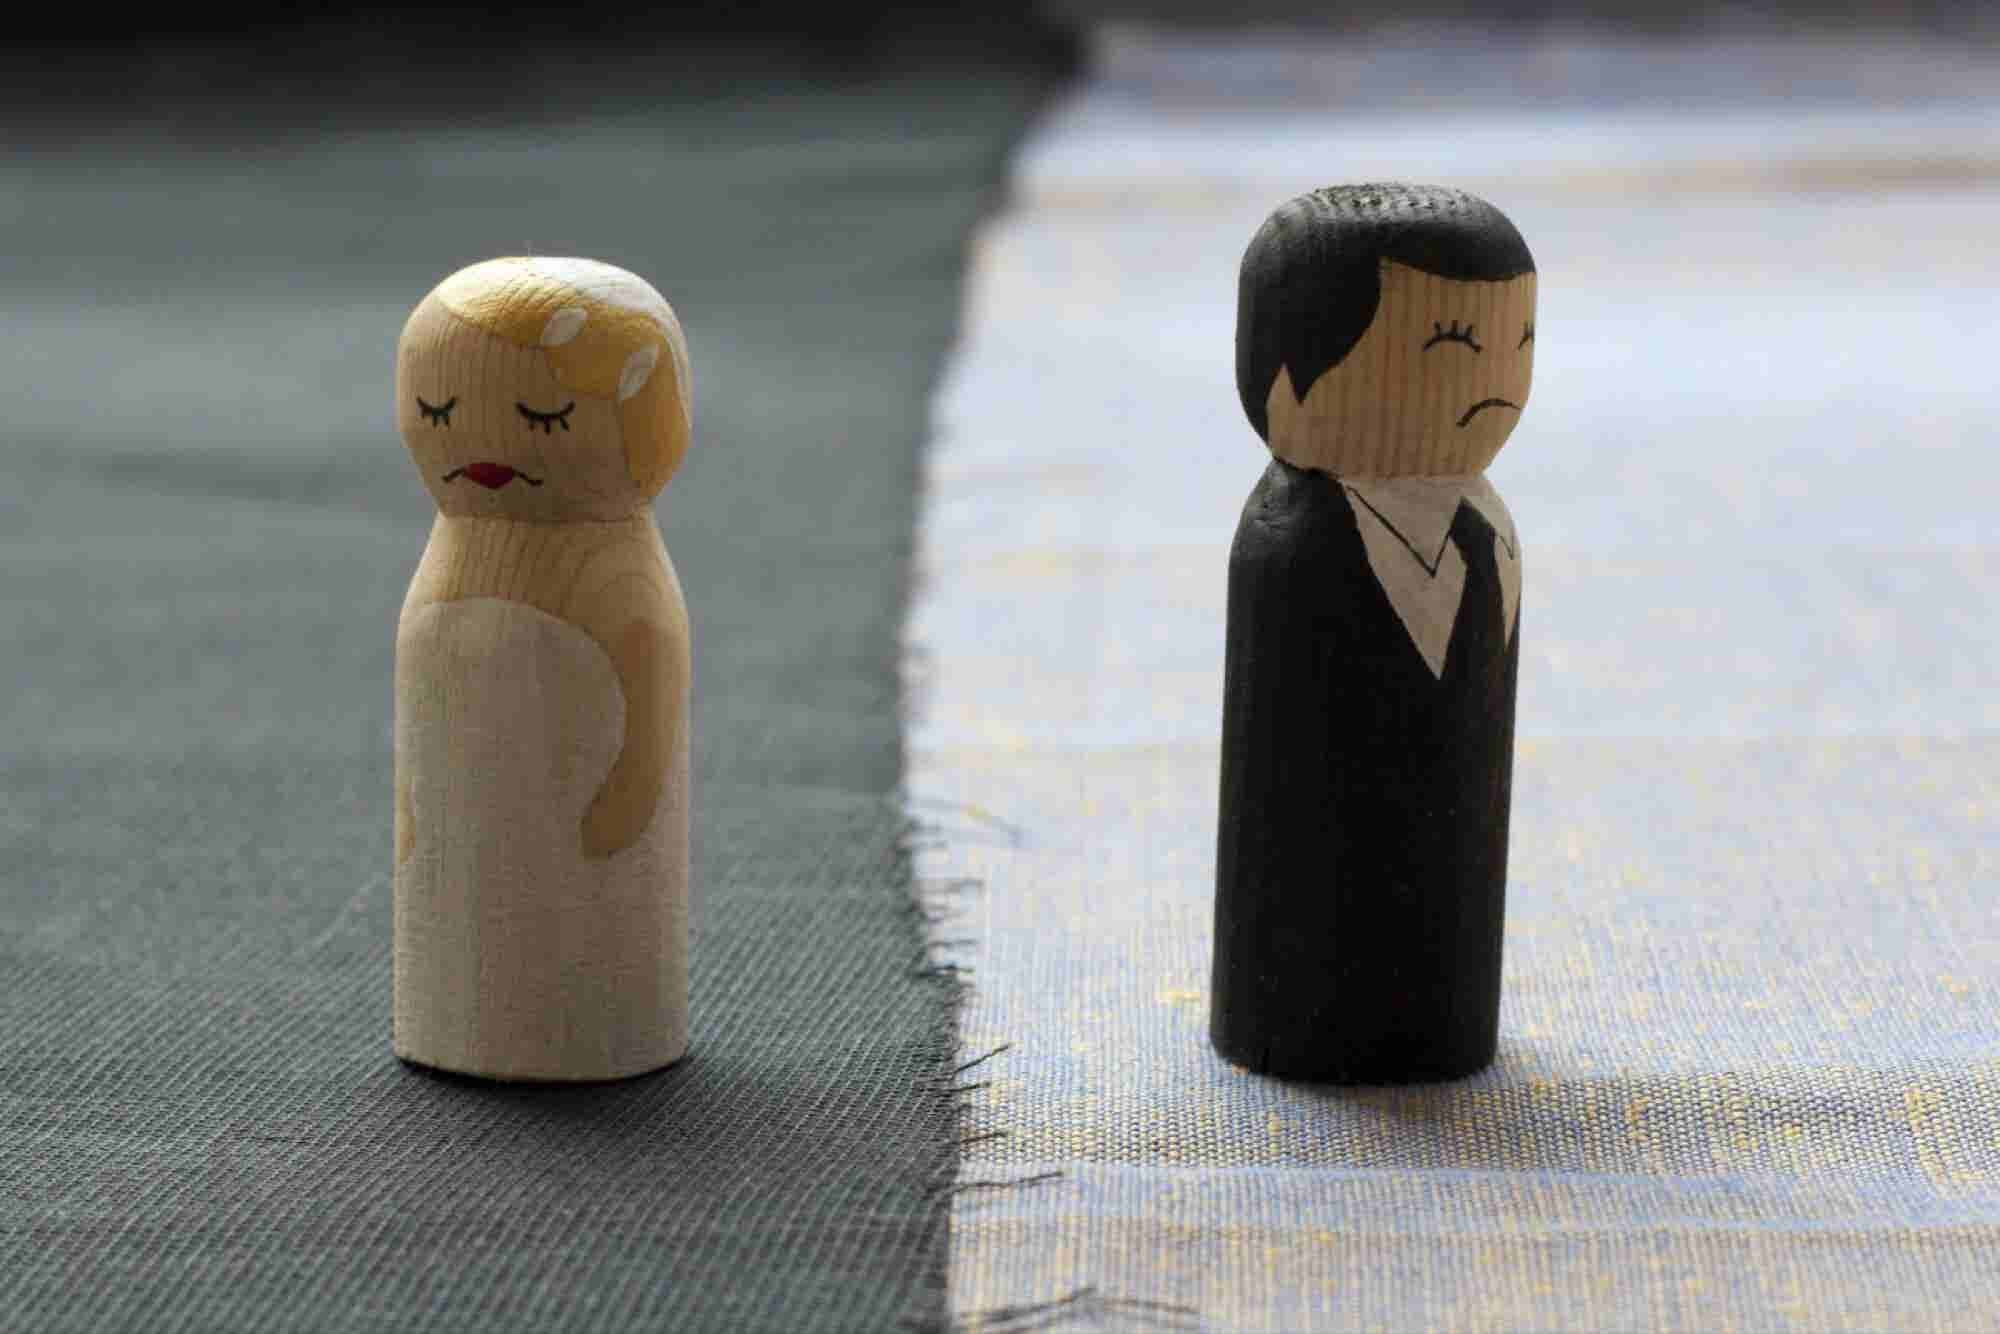 This Startup Aims to Make Divorce a Simpler, Web-Based Process